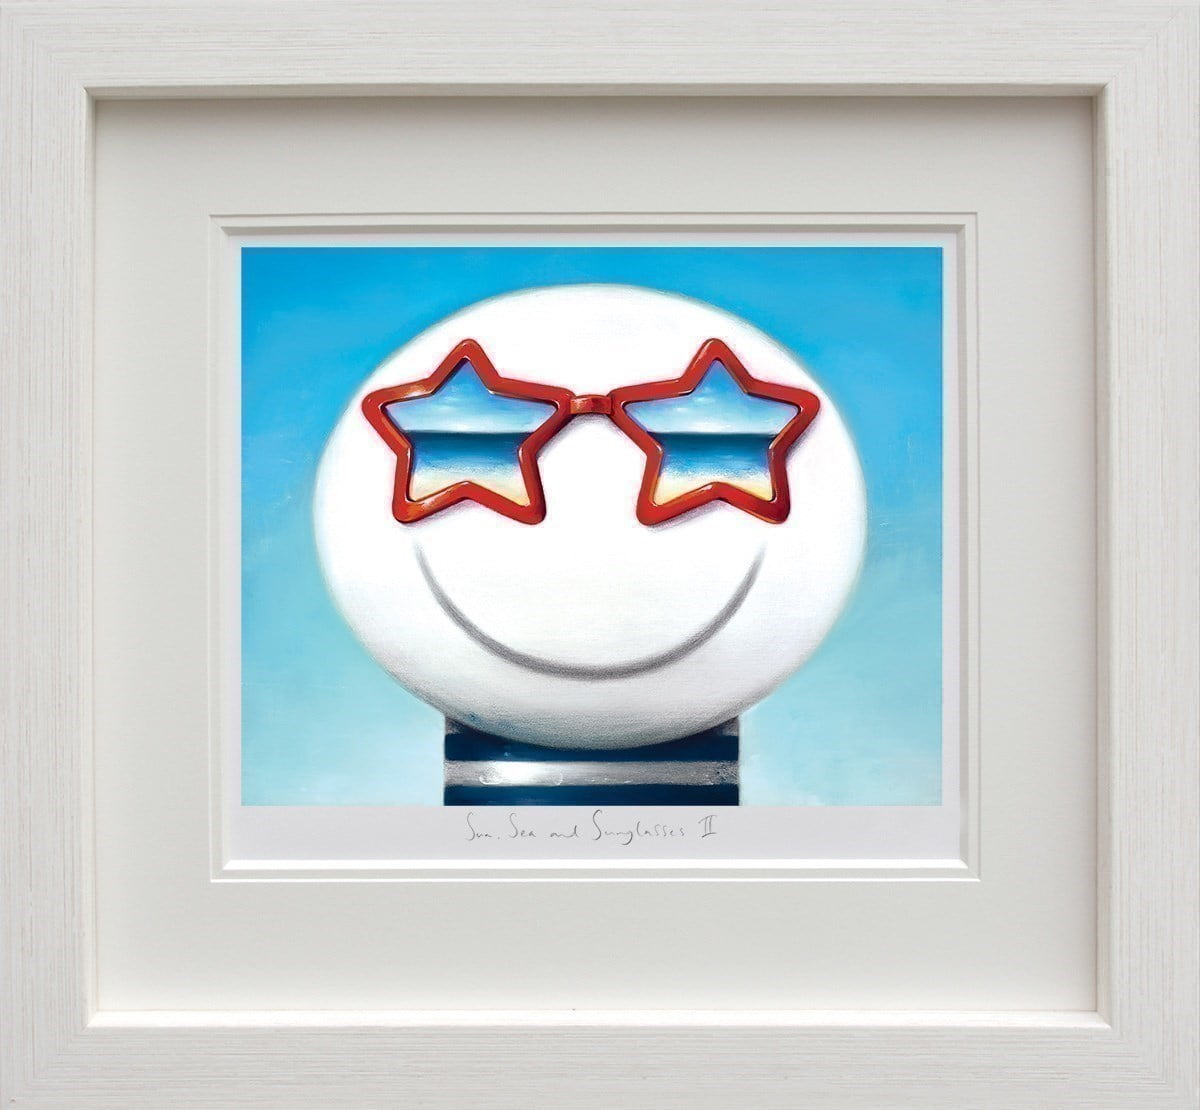 Sun Sea And Sunglasses II ~ Doug Hyde